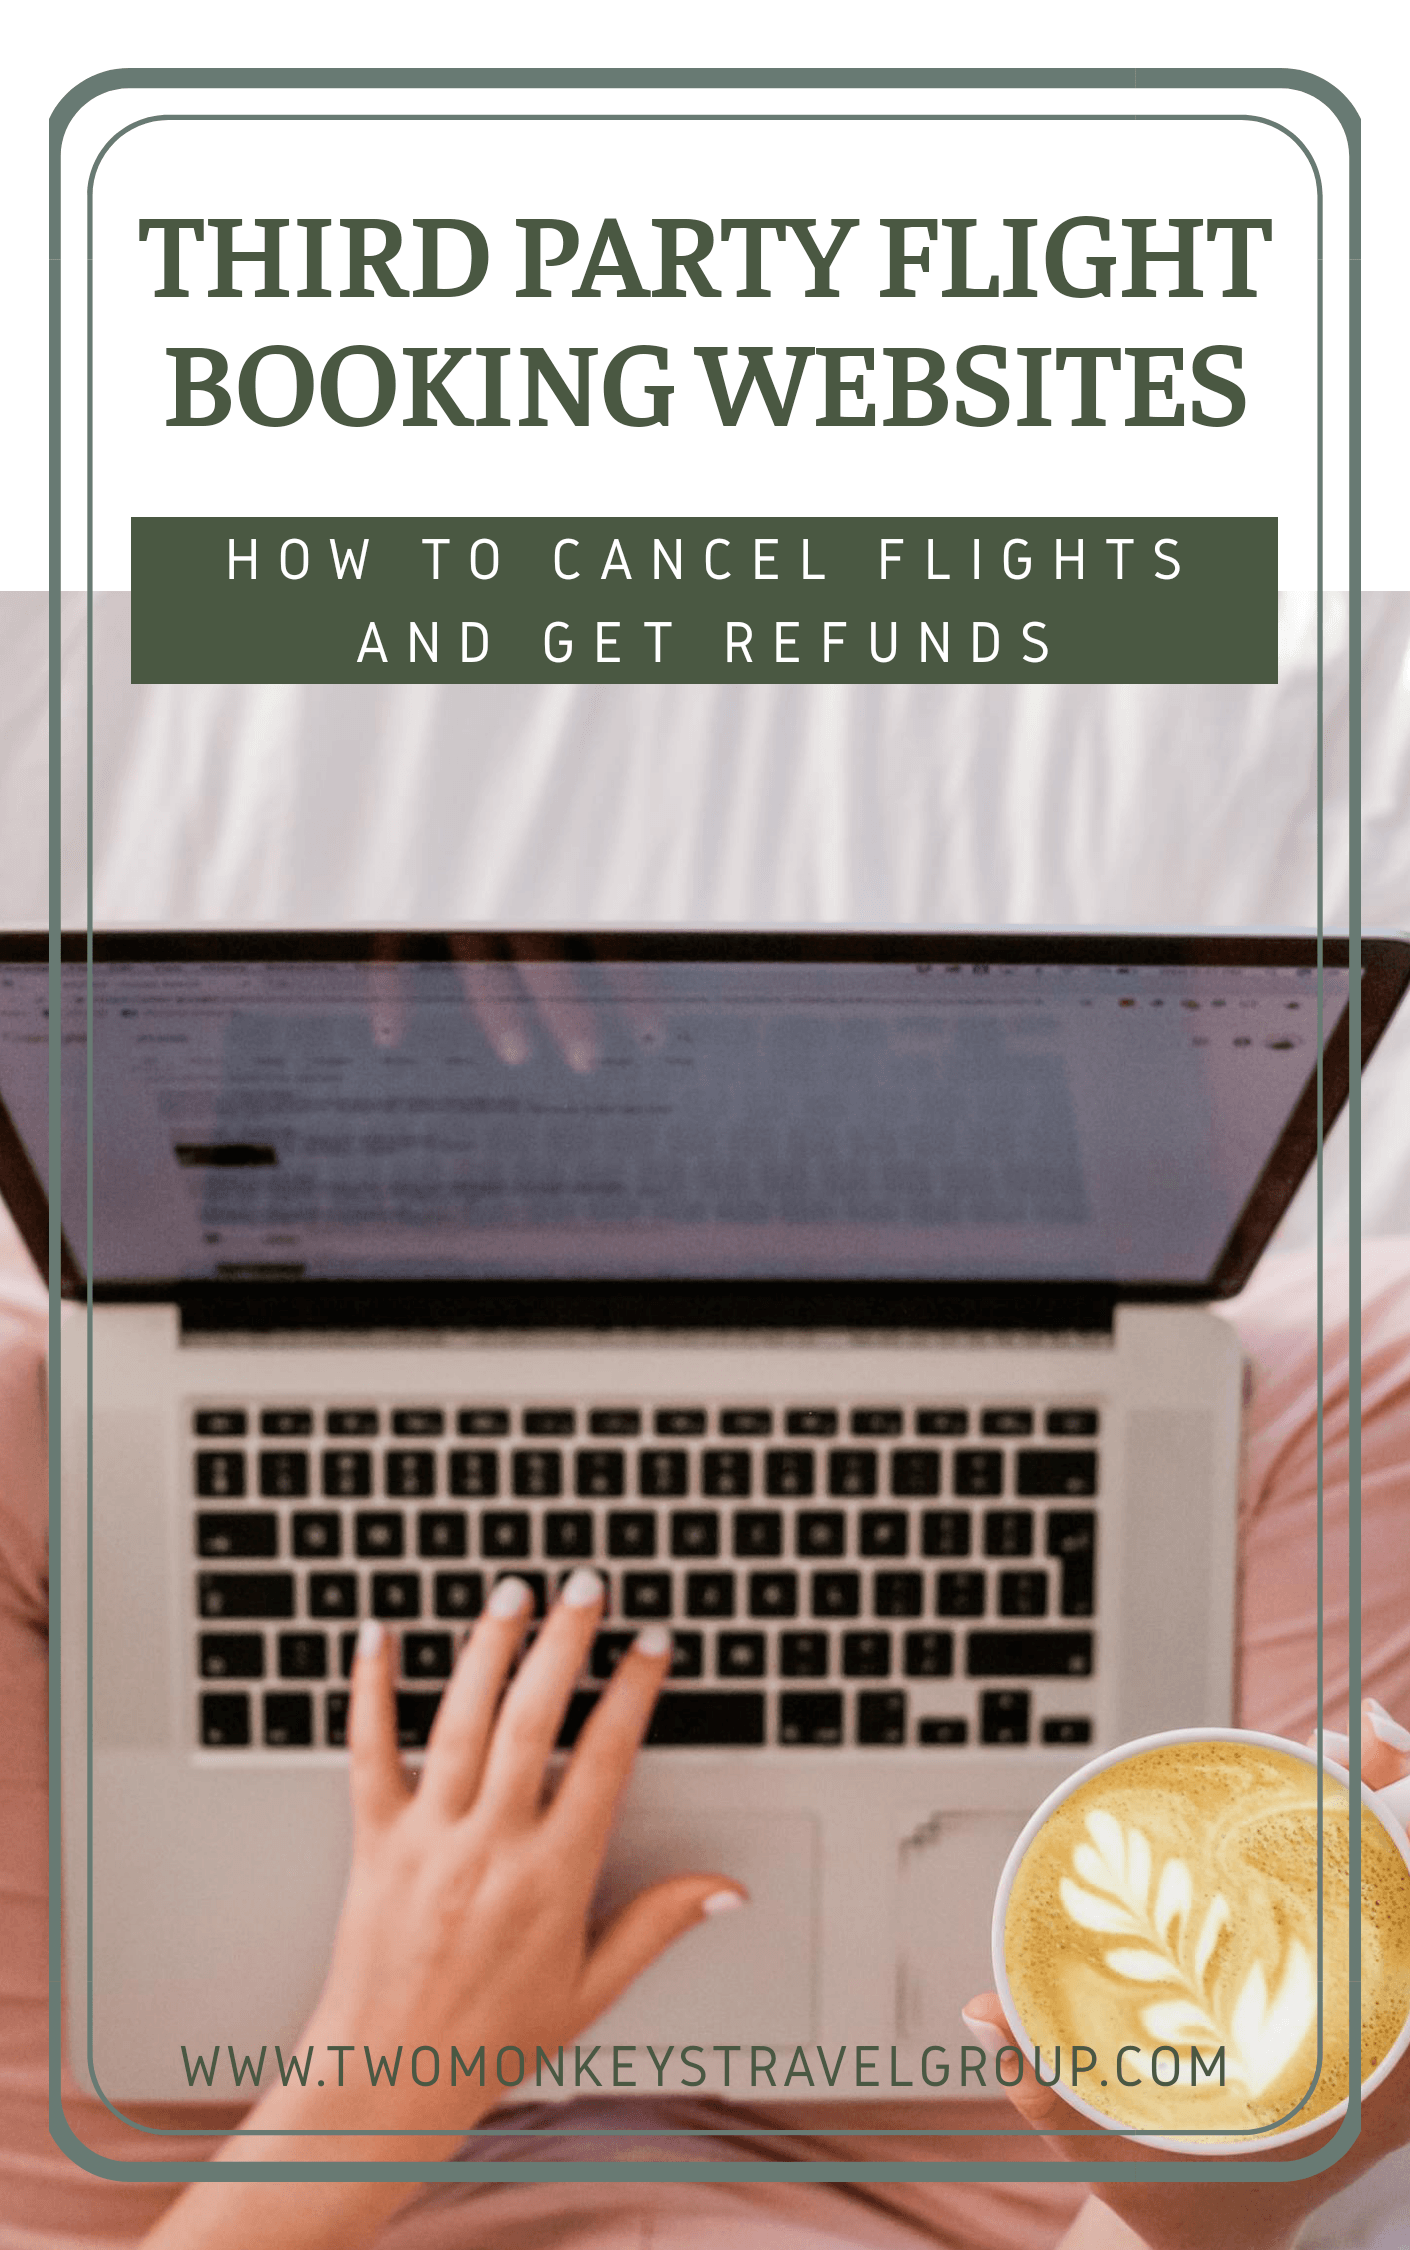 How to Cancel Flights and Get Refunds on Third Party Flight Booking Websites